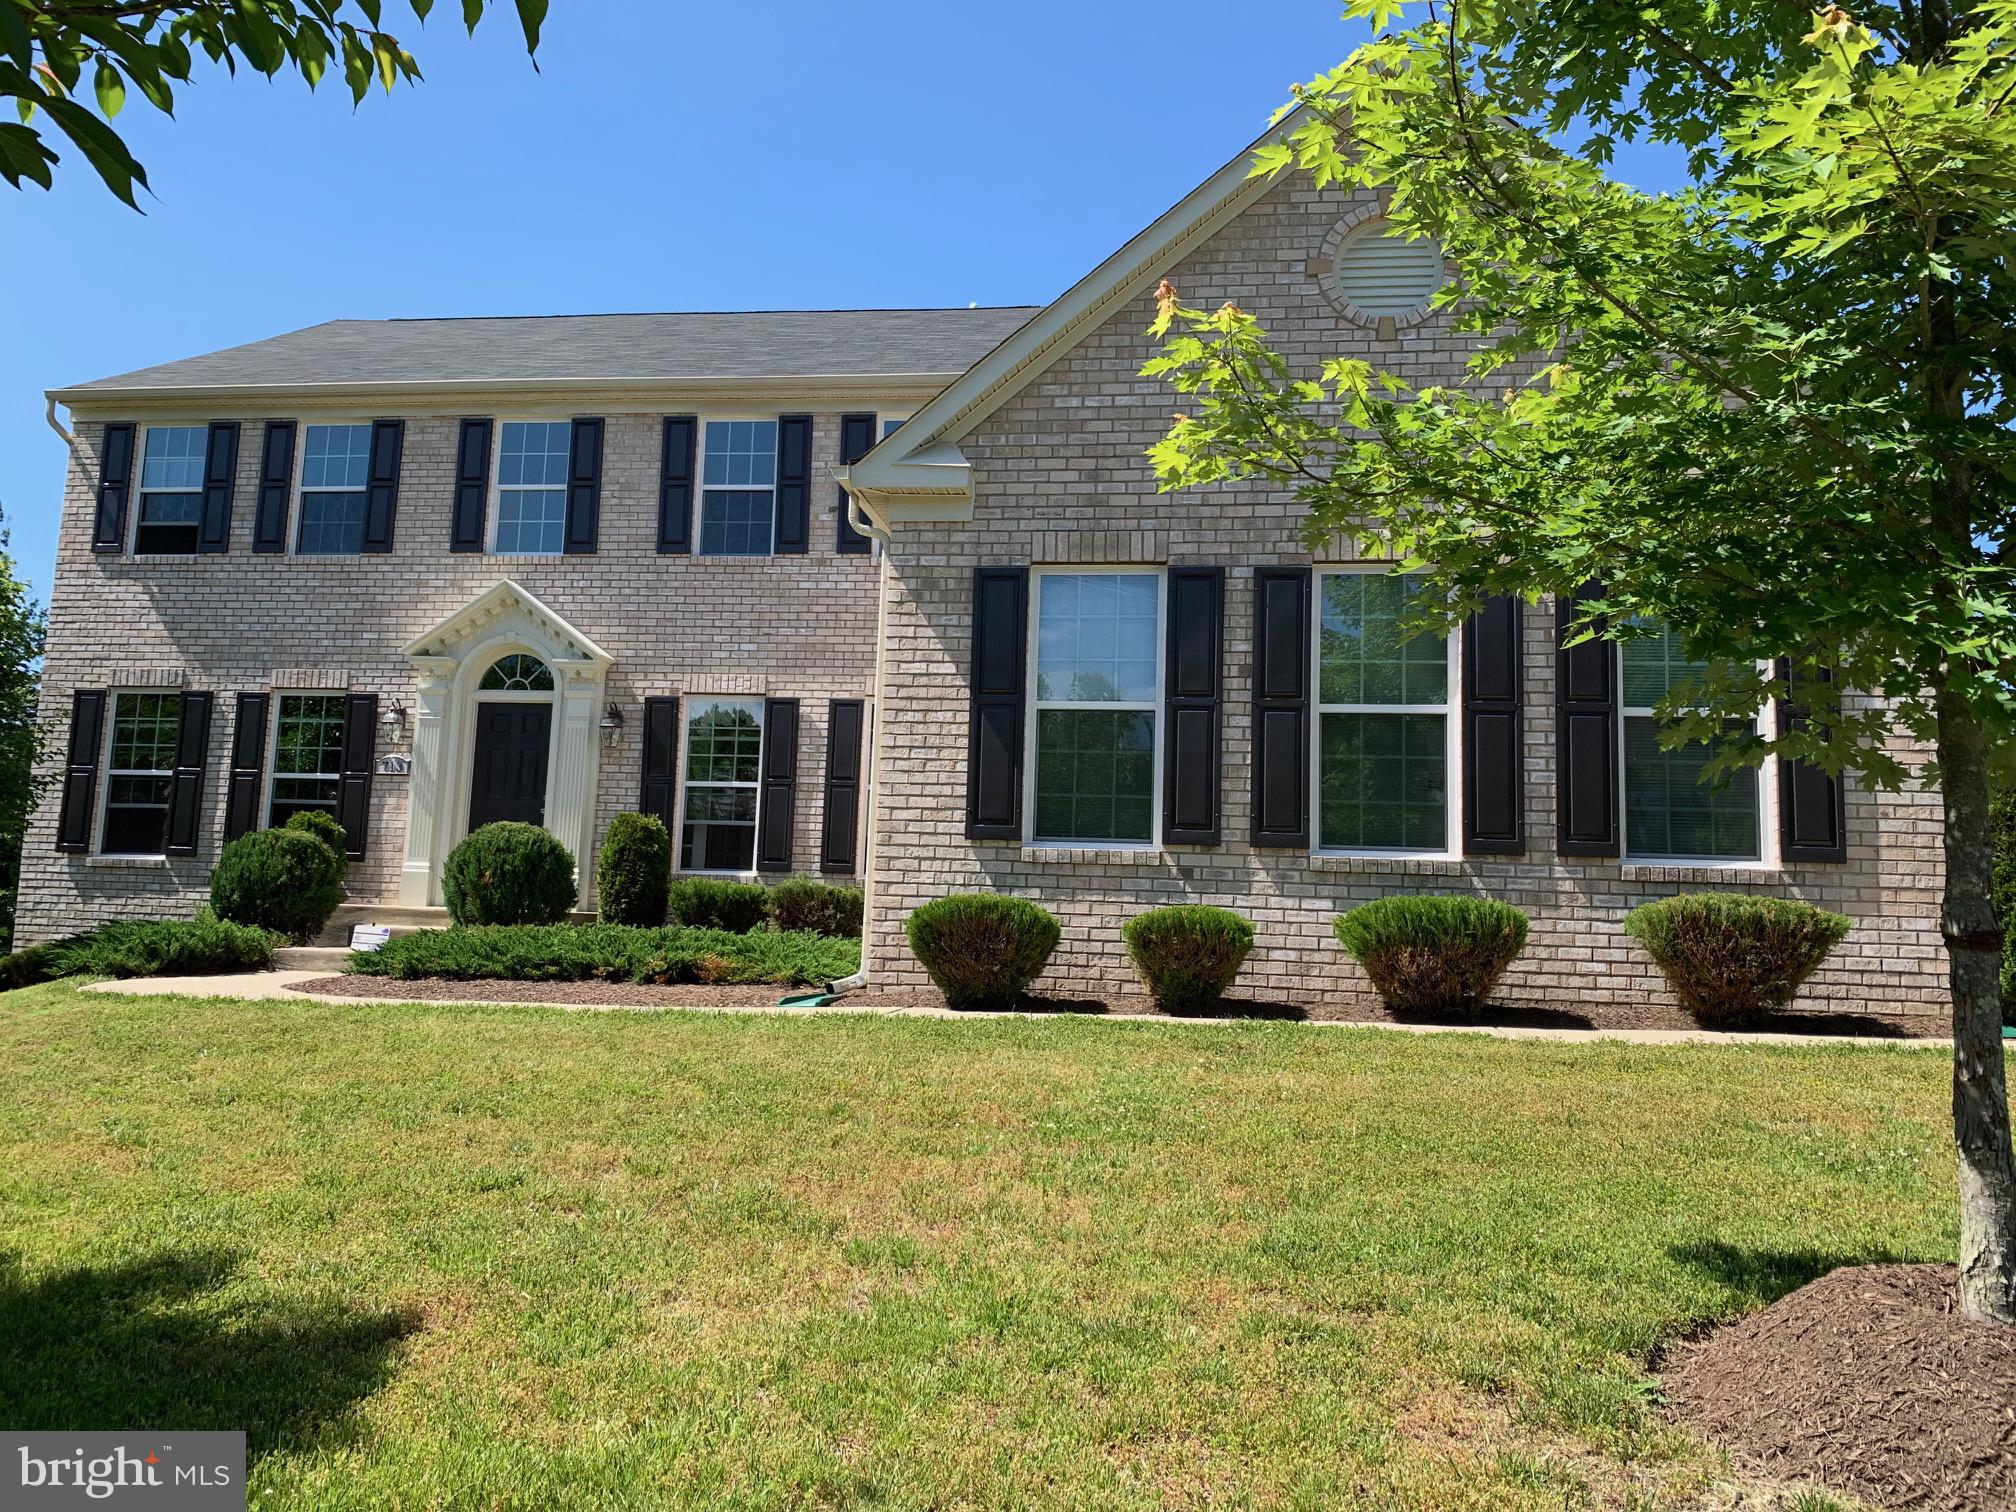 713 YARROW COURT, ACCOKEEK, MD 20607